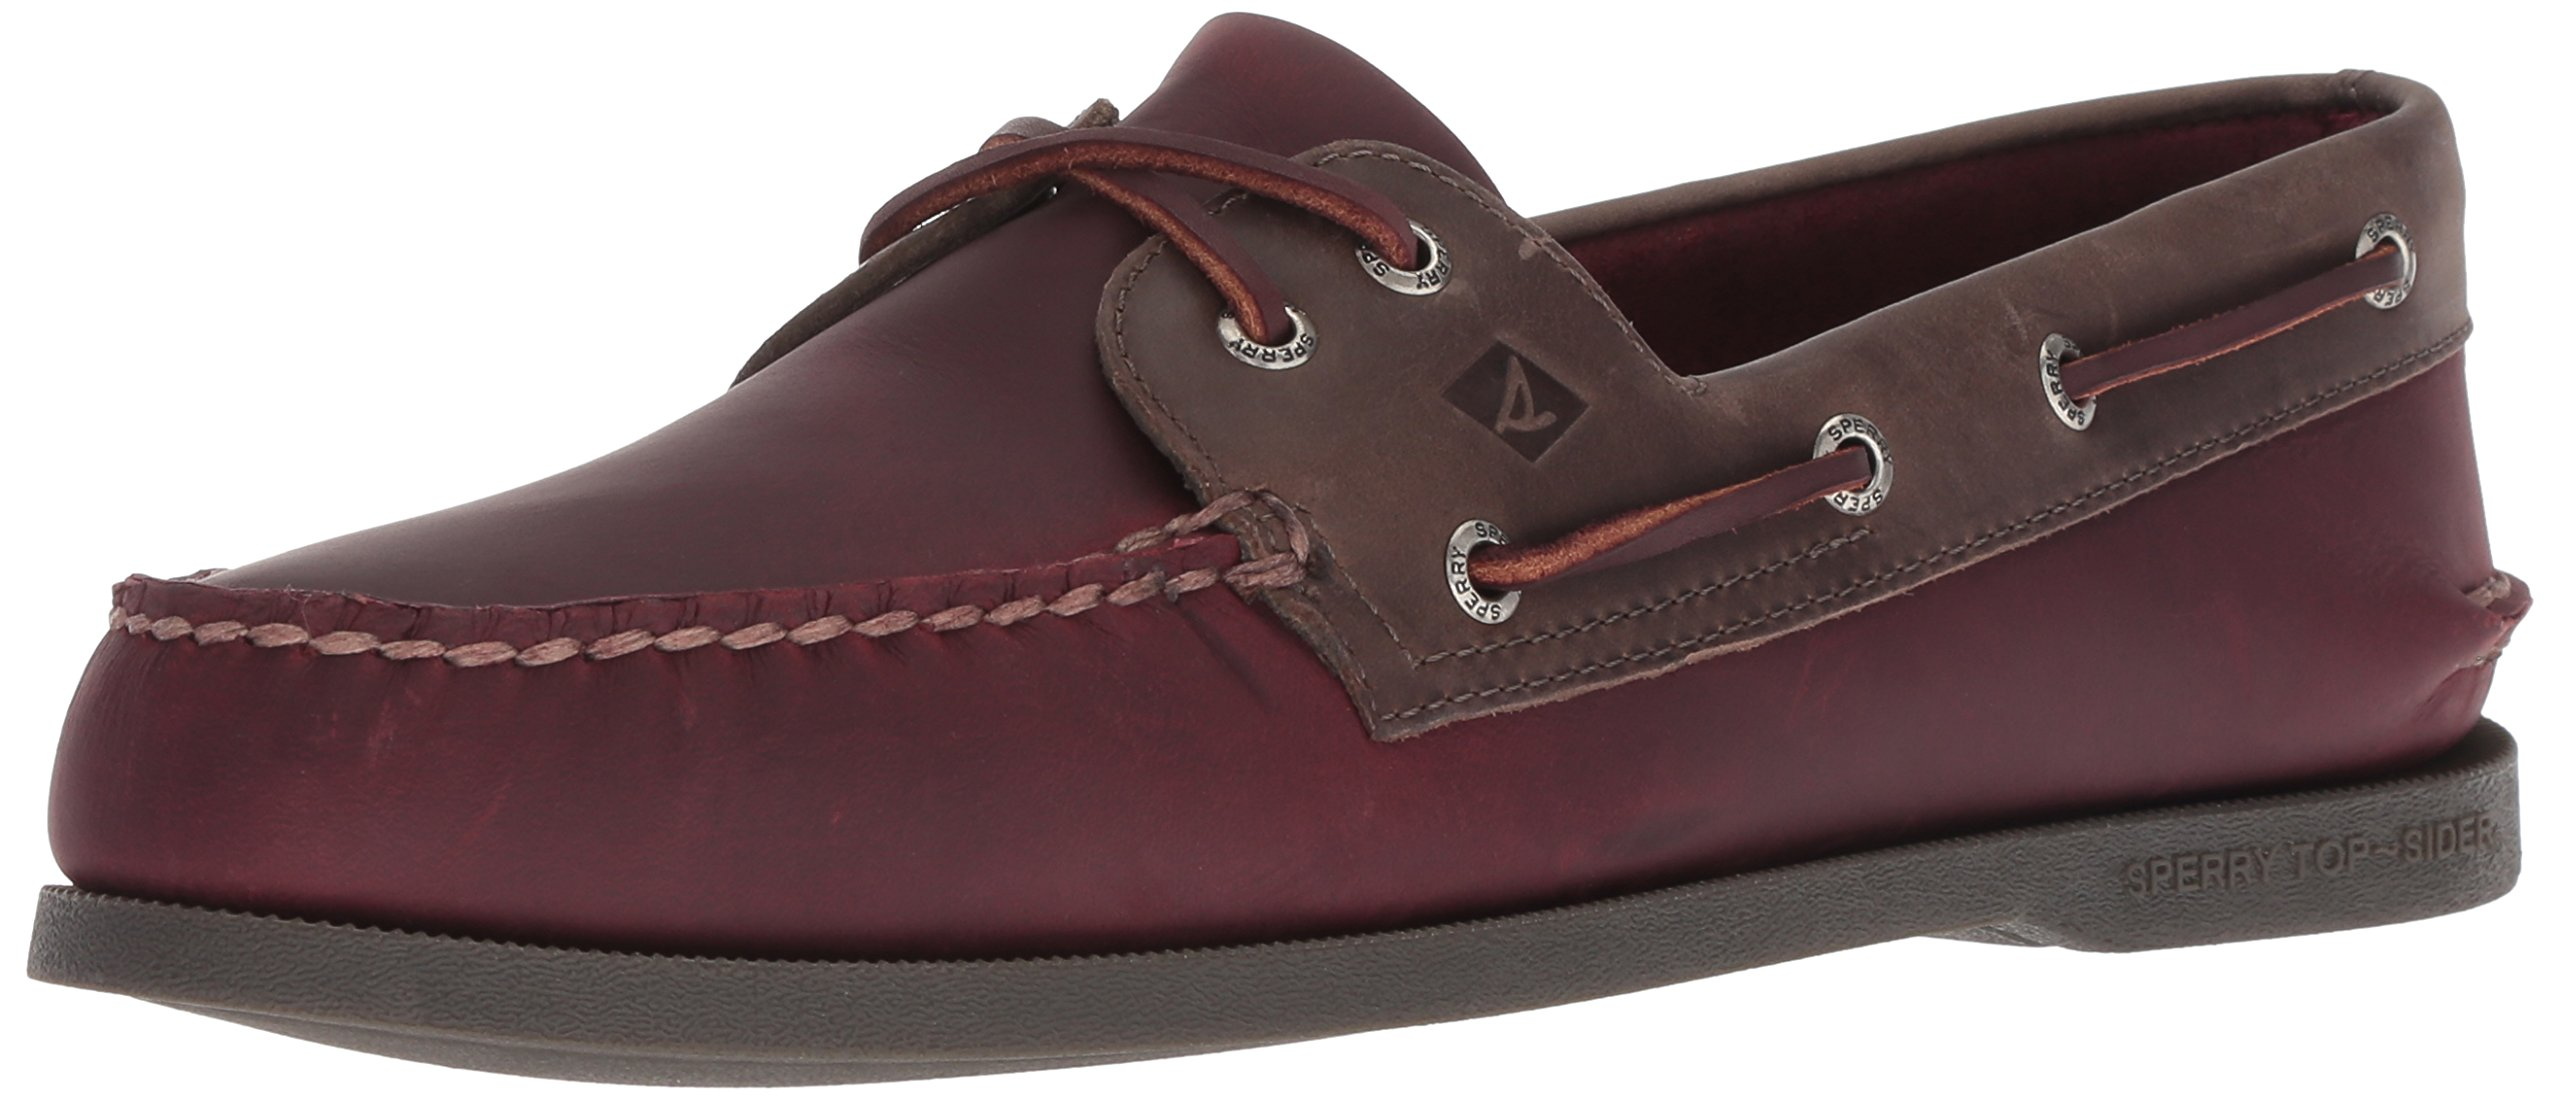 Sperry Top-Sider Men's a/O 2-Eye Pullup Boat Shoe, Burgundy/Grey, 9.5 M US by Sperry Top-Sider